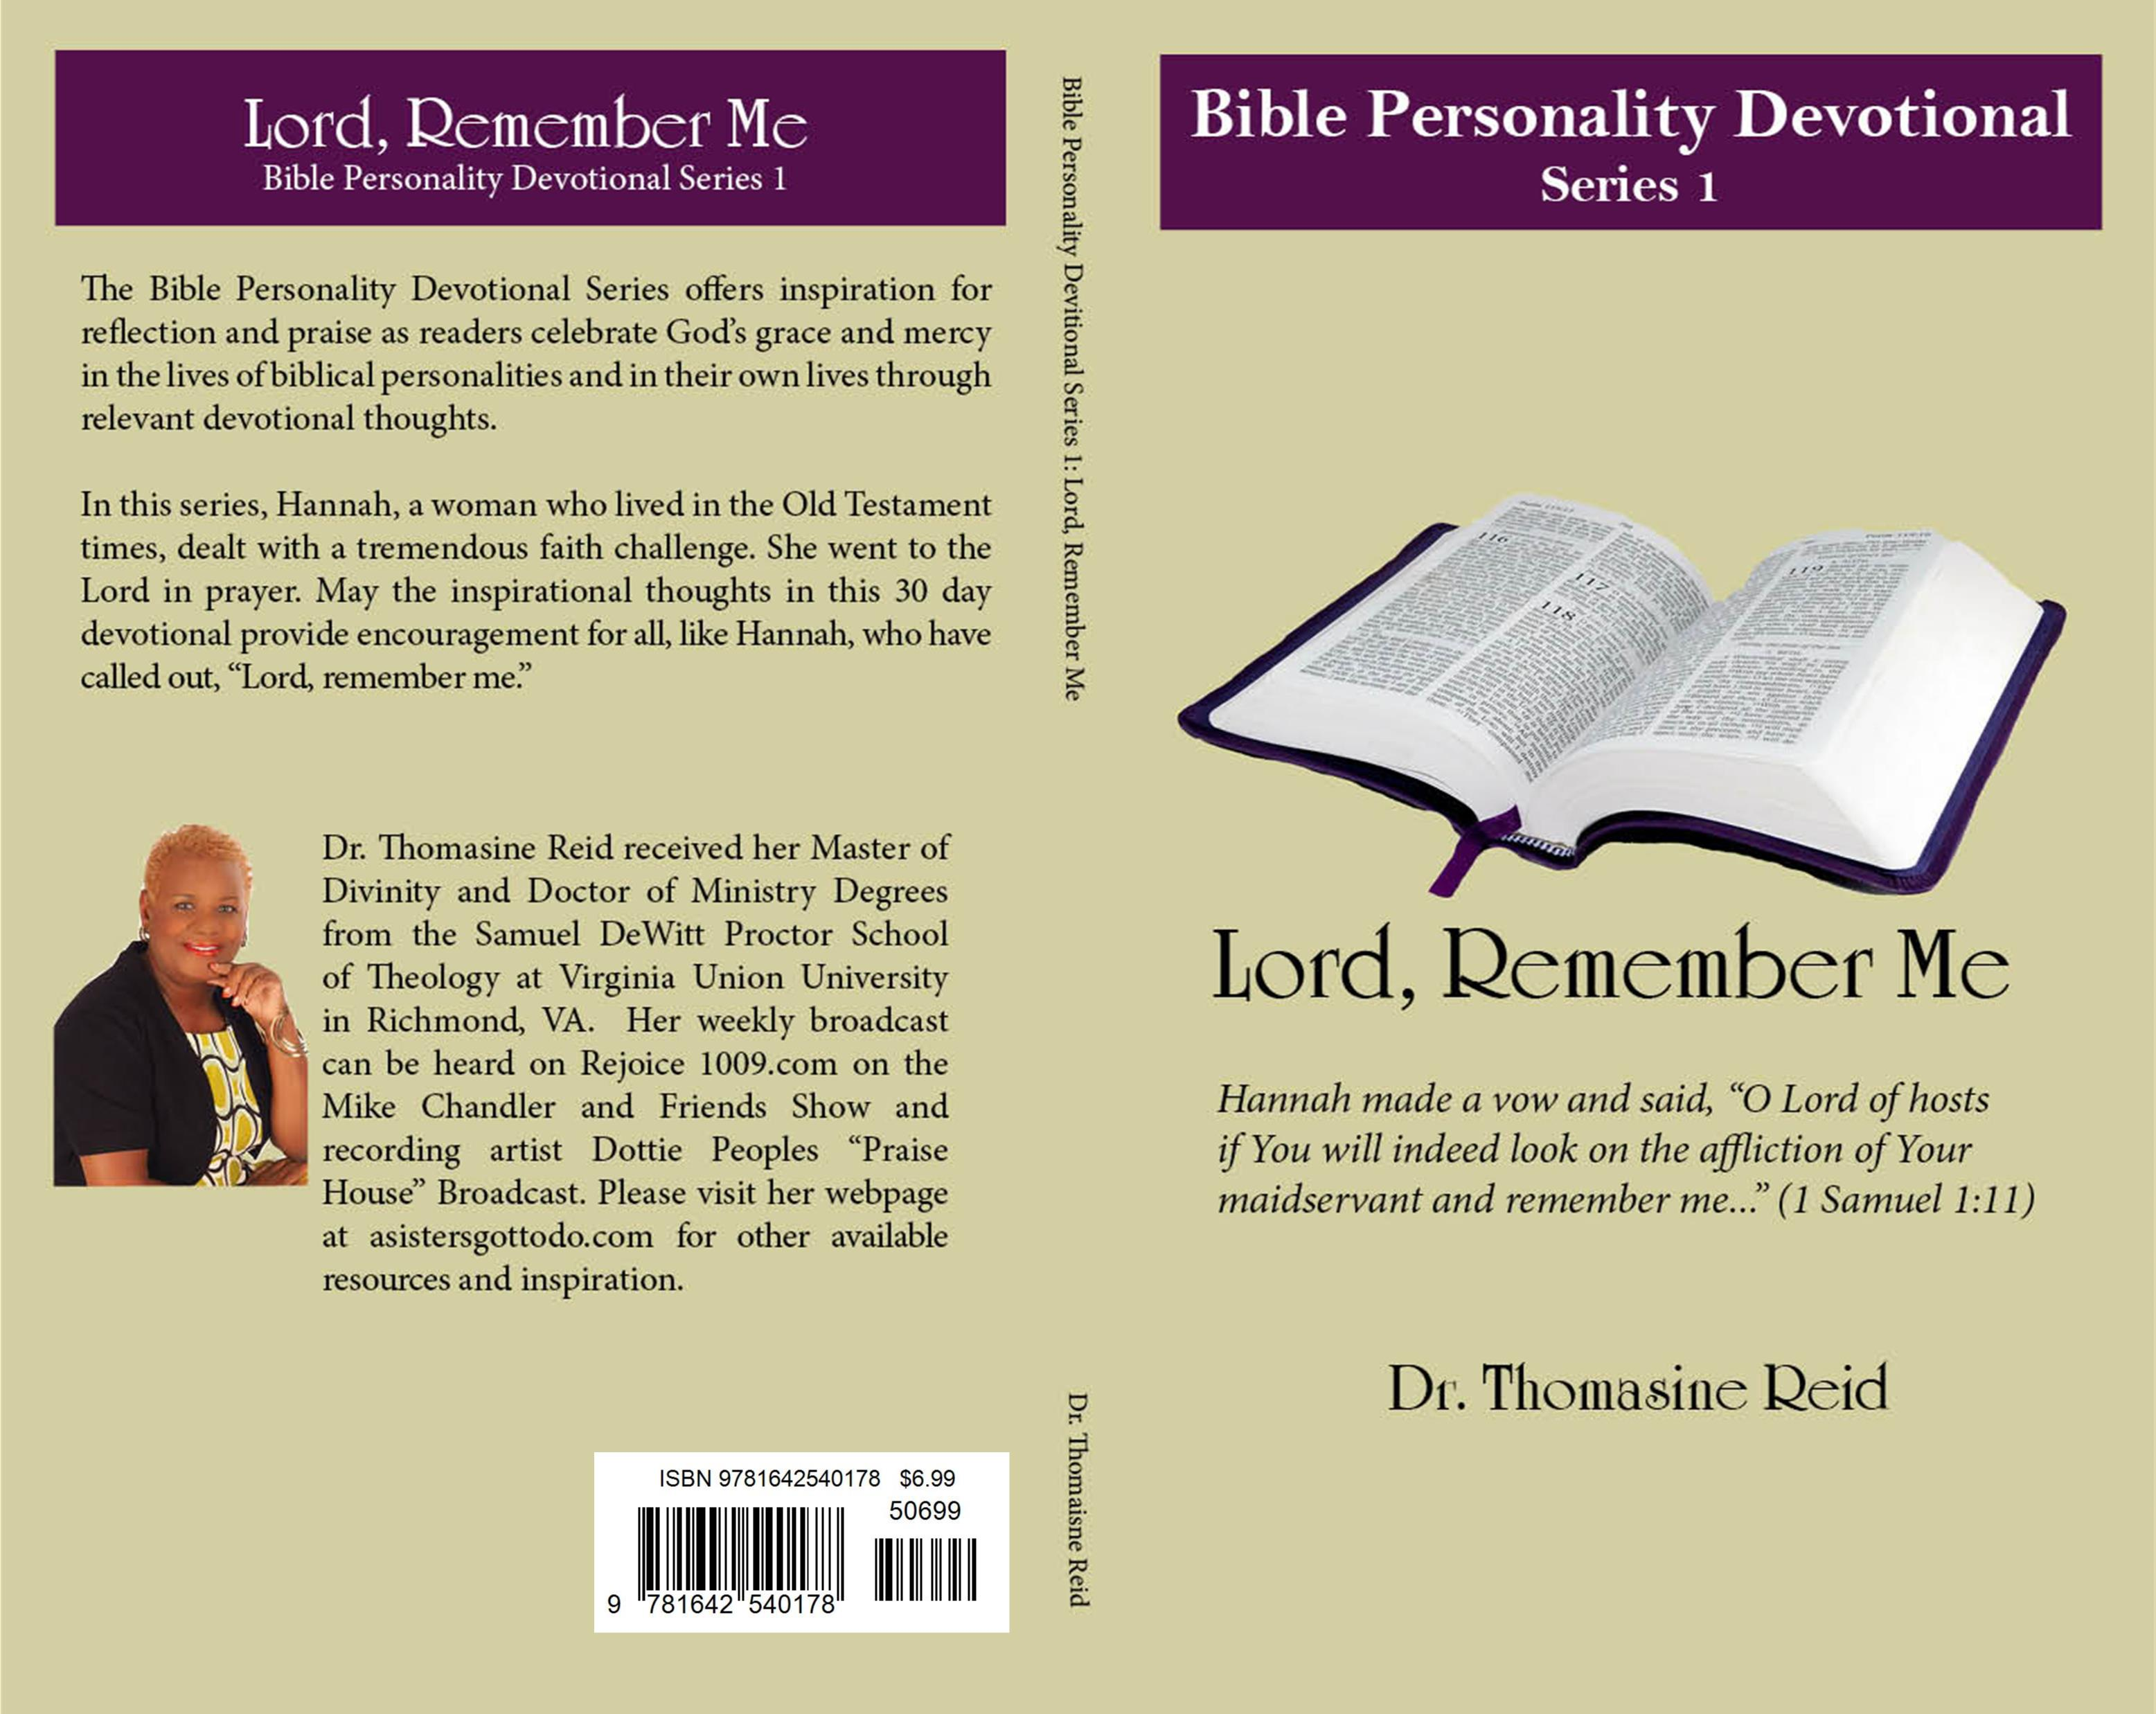 Lord, Remember Me - Bible Personality Devotional Series cover image